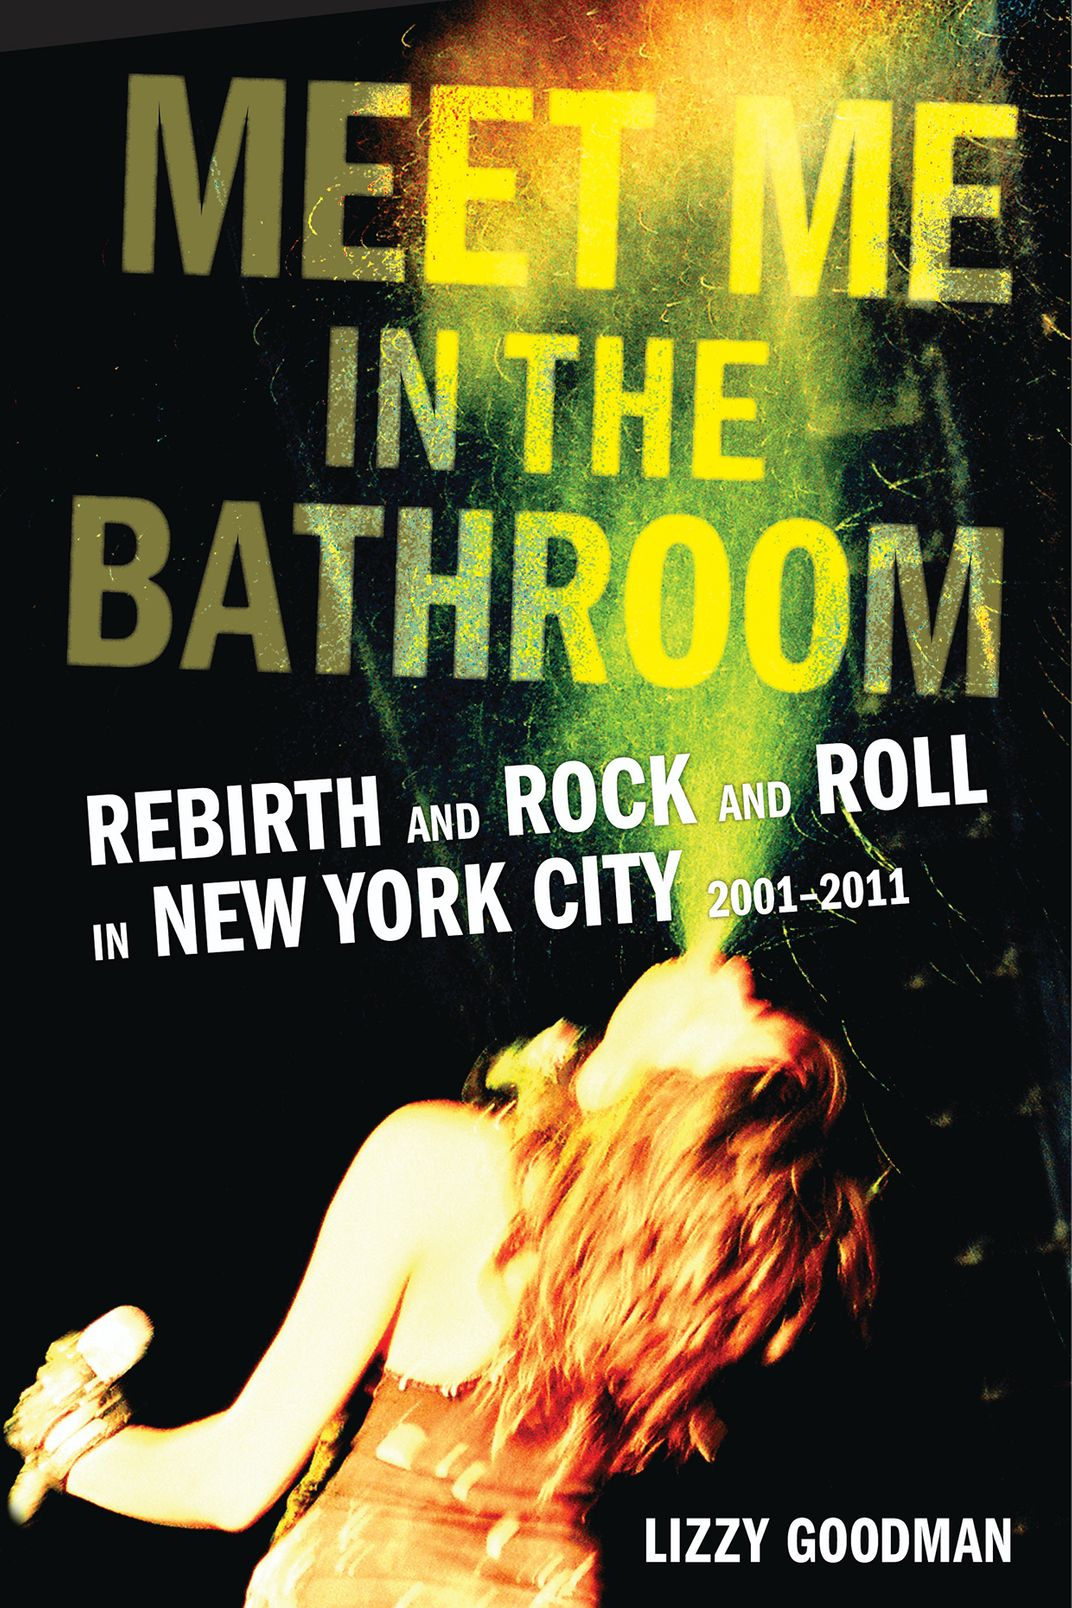 Meet Me in the Bathroom: Rebirth and Rock and Roll in New York City 2001-2011, by Lizzy Goodman